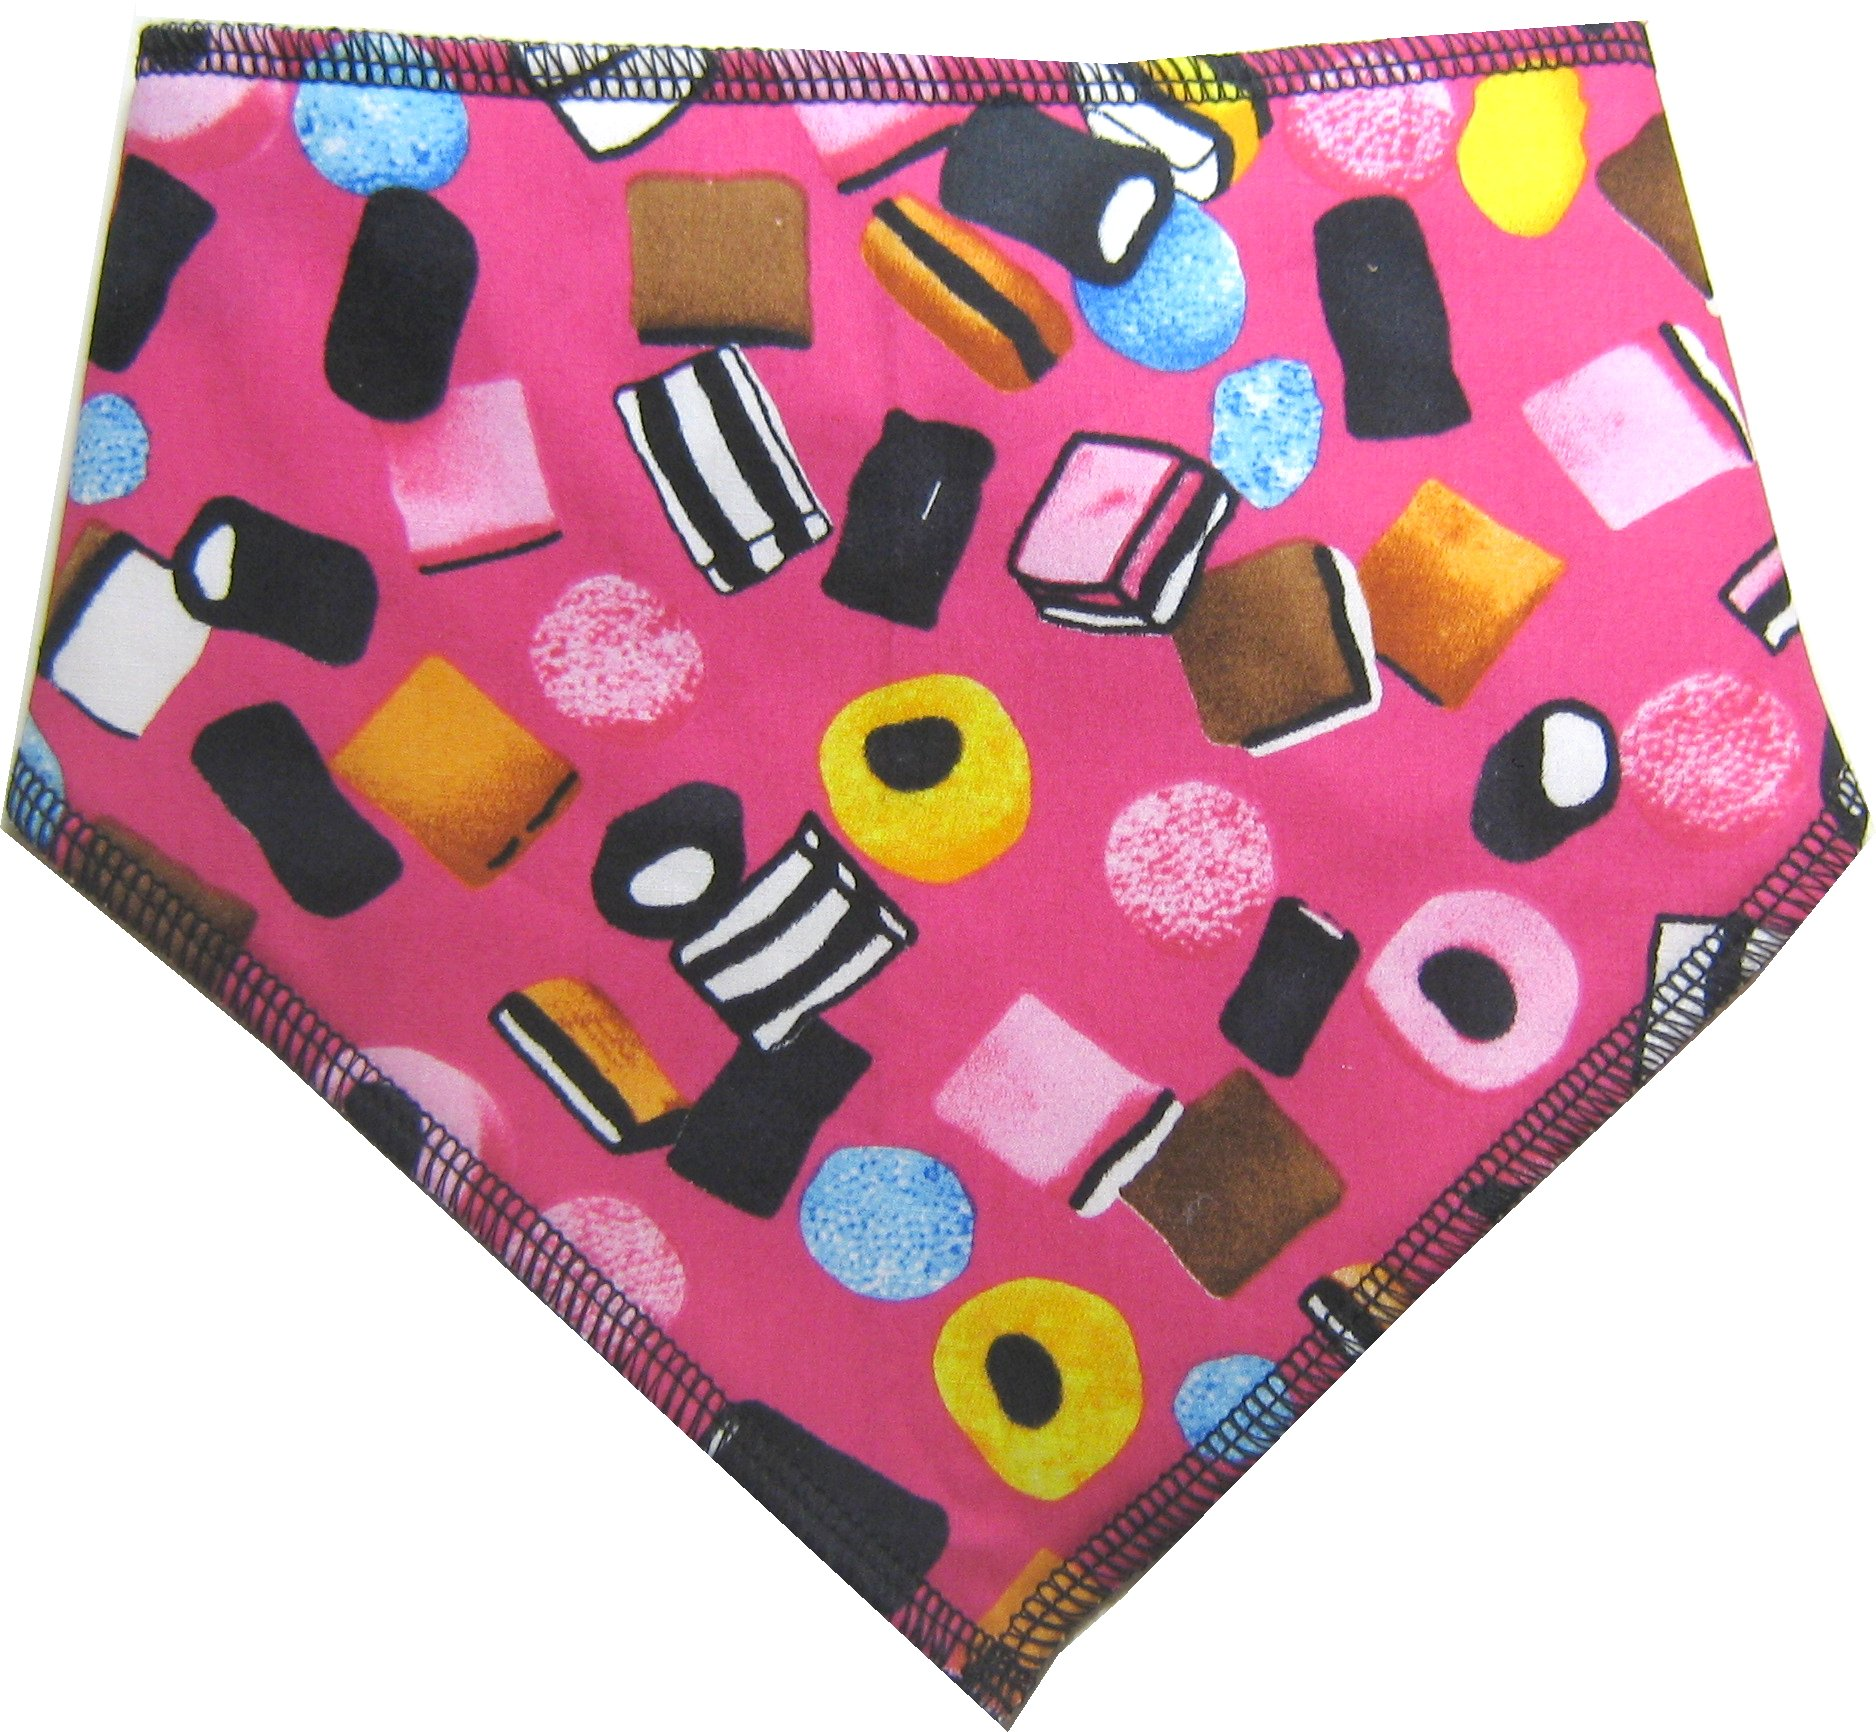 Spoilt Rotten Pets (S4) Liquorice Allsorts PINK Dog Bandana. Extra Large Size Generally Fits Rottweilers and St Bernard Sized Dogs. Neck Size 23″ to 28″ Gorgeous Range of Patterns & Colours.